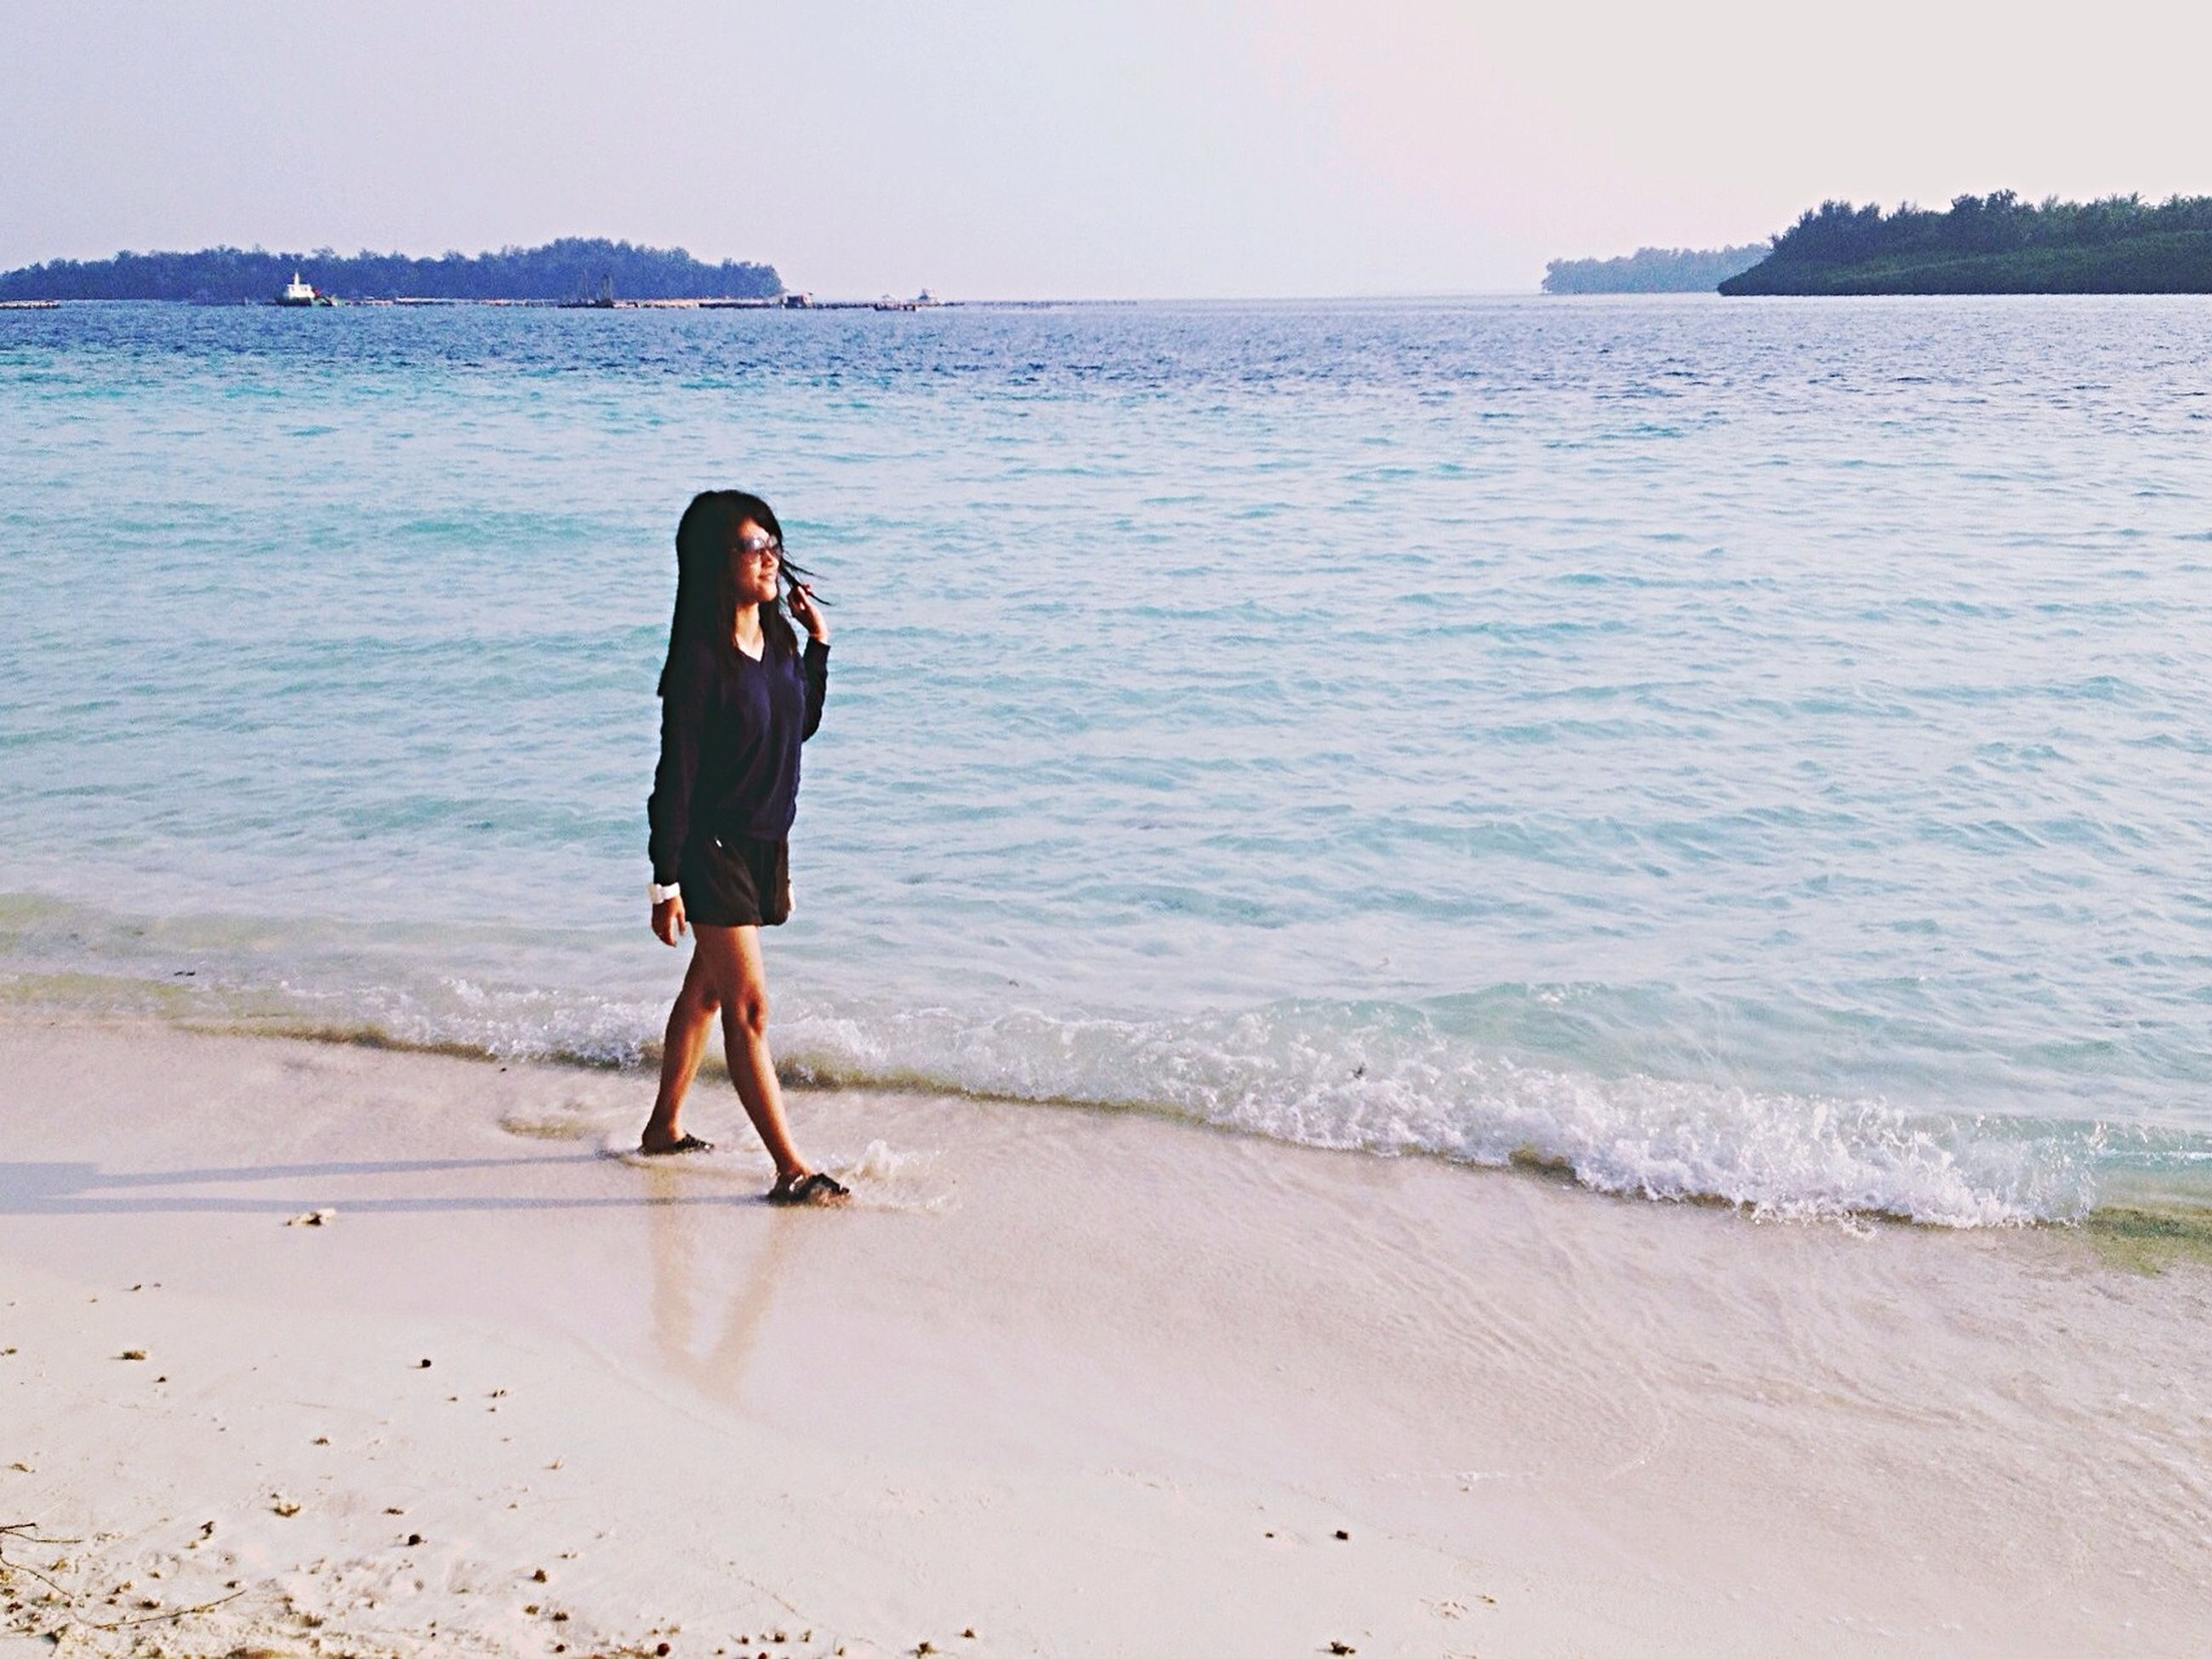 sea, beach, water, horizon over water, shore, full length, sand, lifestyles, leisure activity, vacations, standing, casual clothing, wave, tranquility, tranquil scene, beauty in nature, rear view, scenics